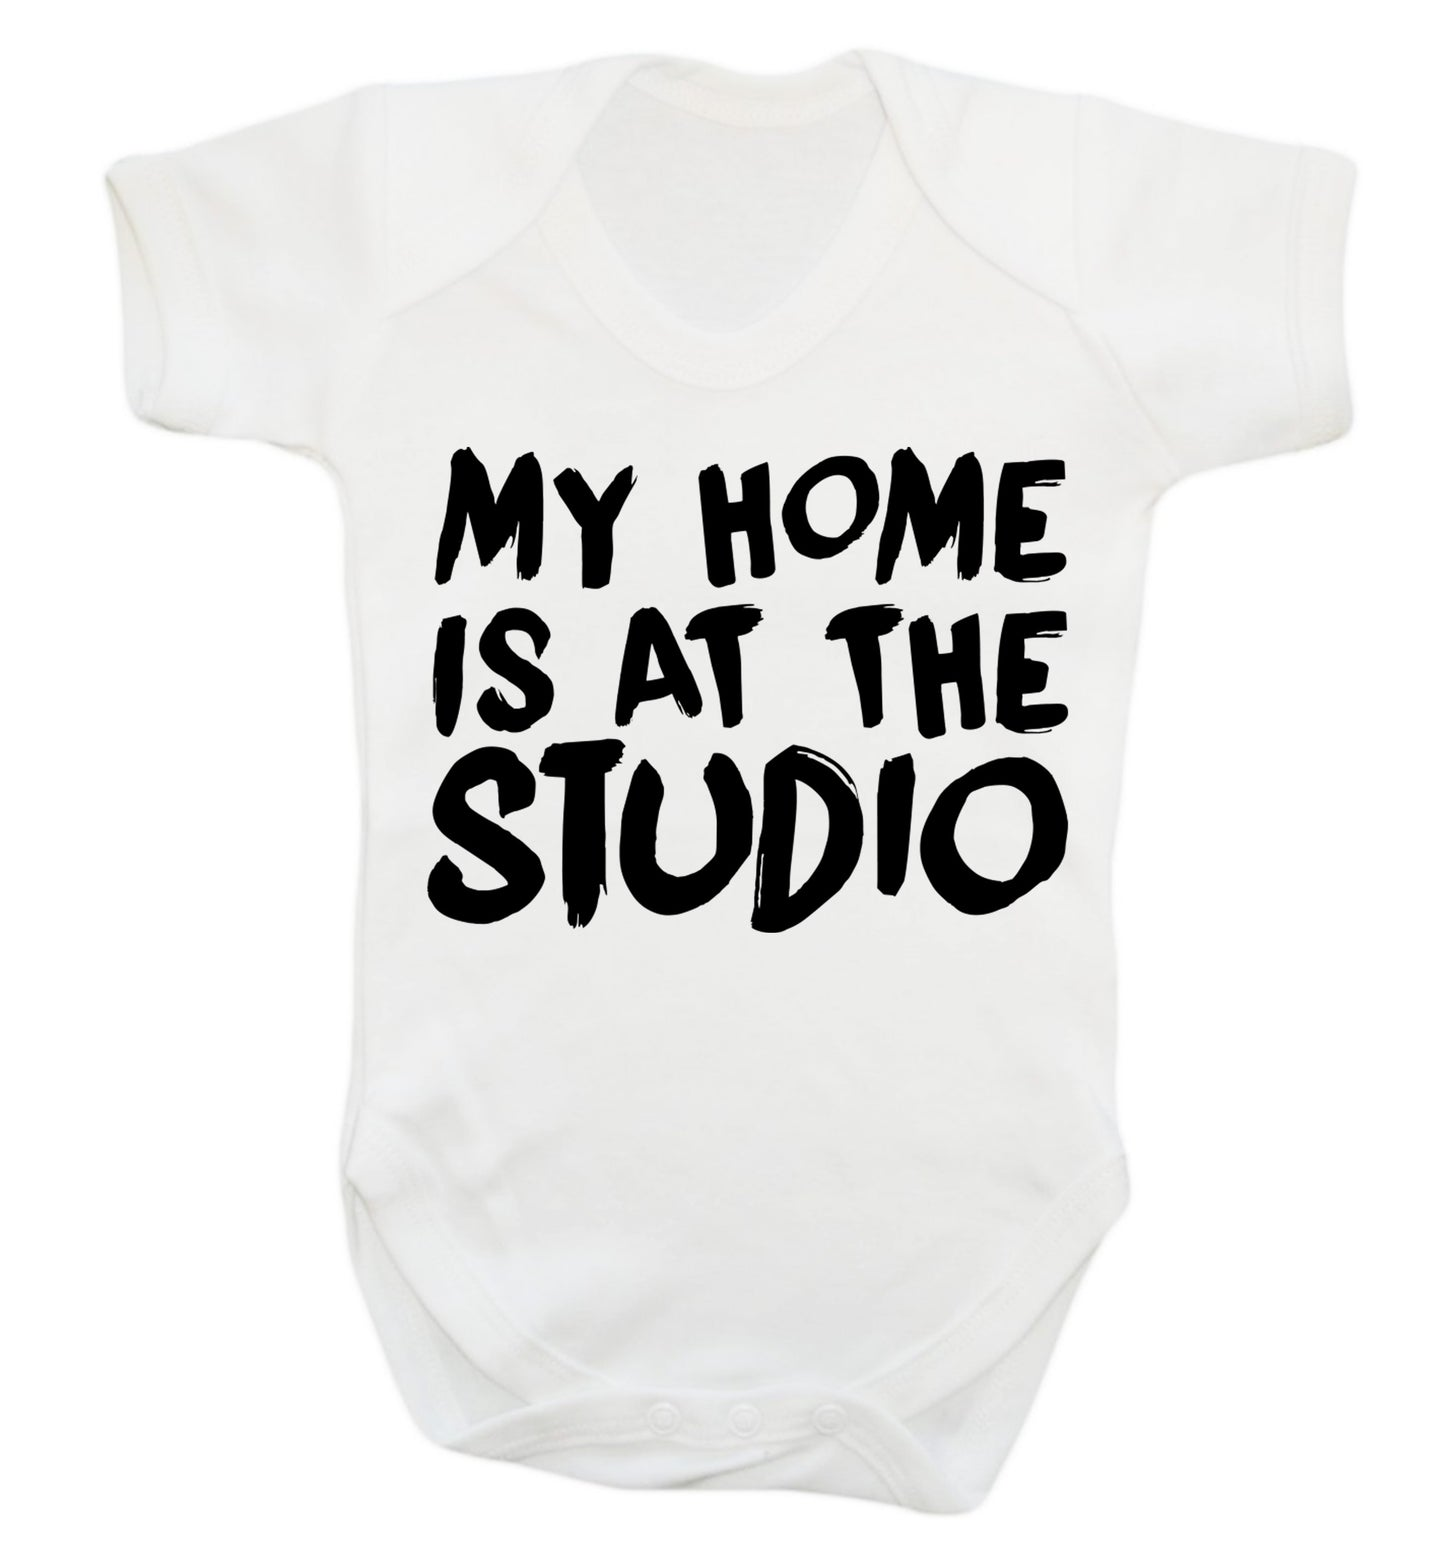 My home is at the studio Baby Vest white 18-24 months